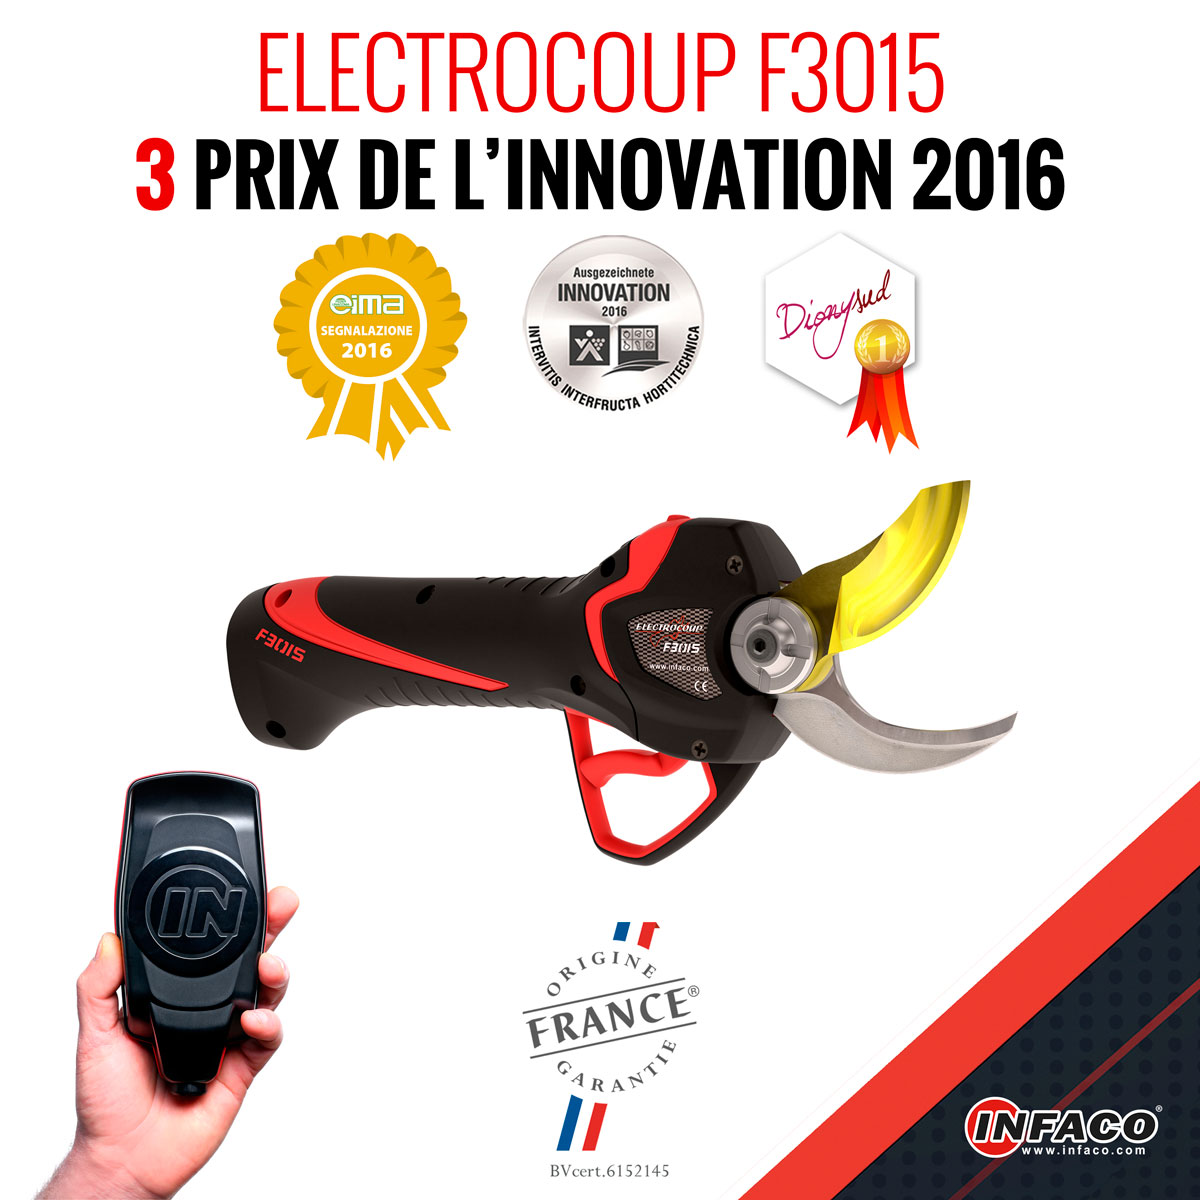 secateur electrocup infaco f3015 prix innovations 2016